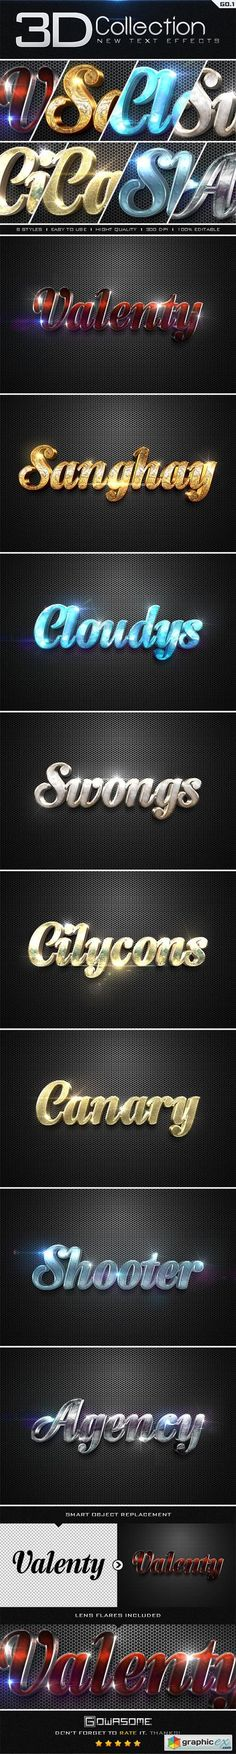 New 3D Collection Text Effects GO.1